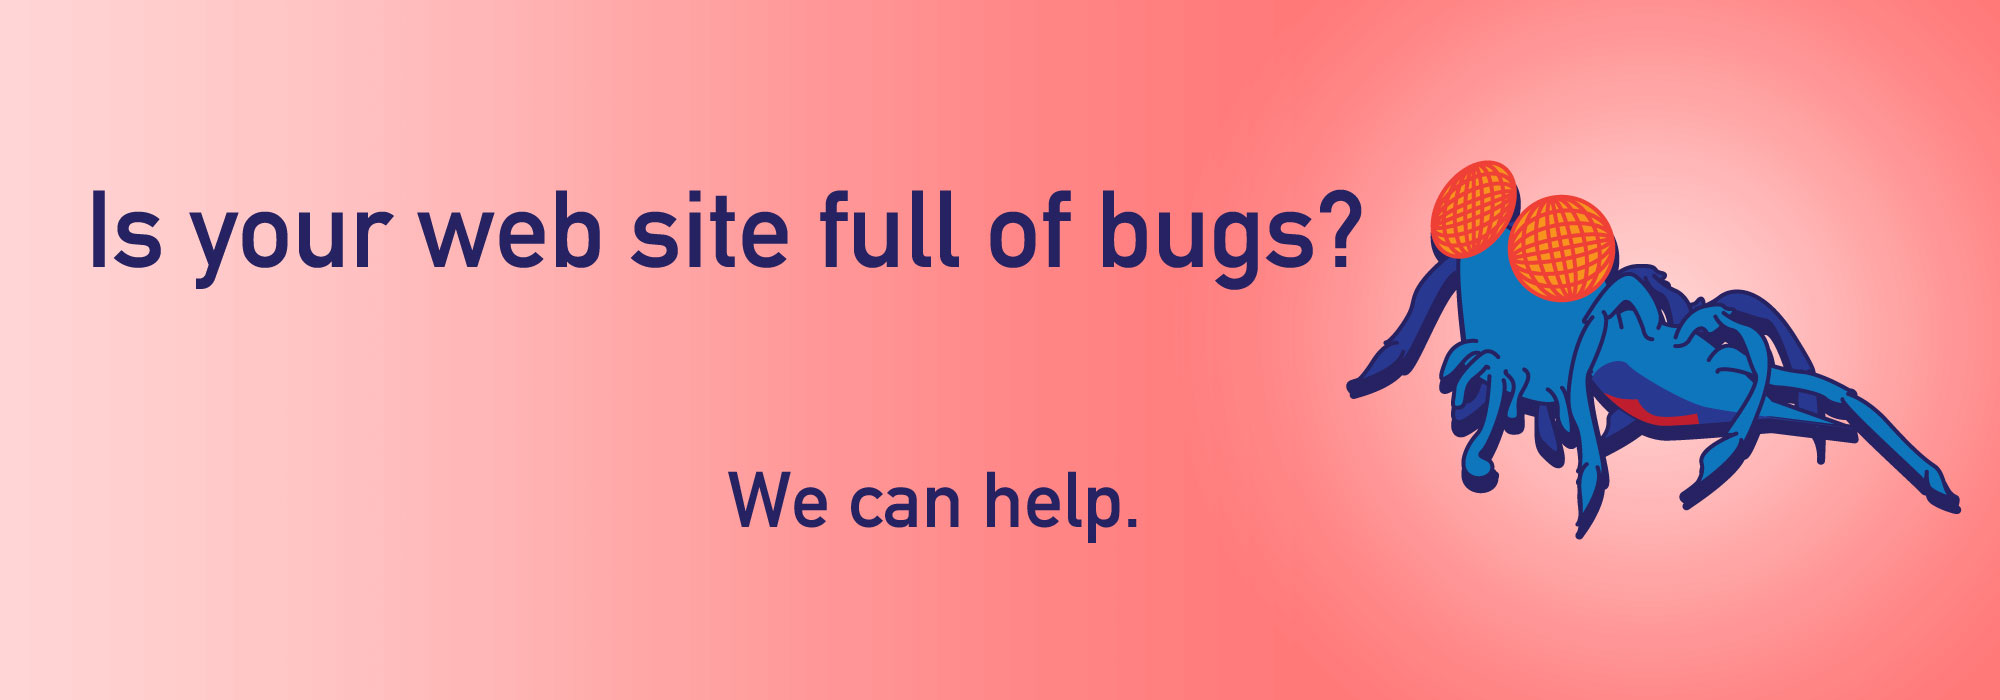 imgIs your site buggy?